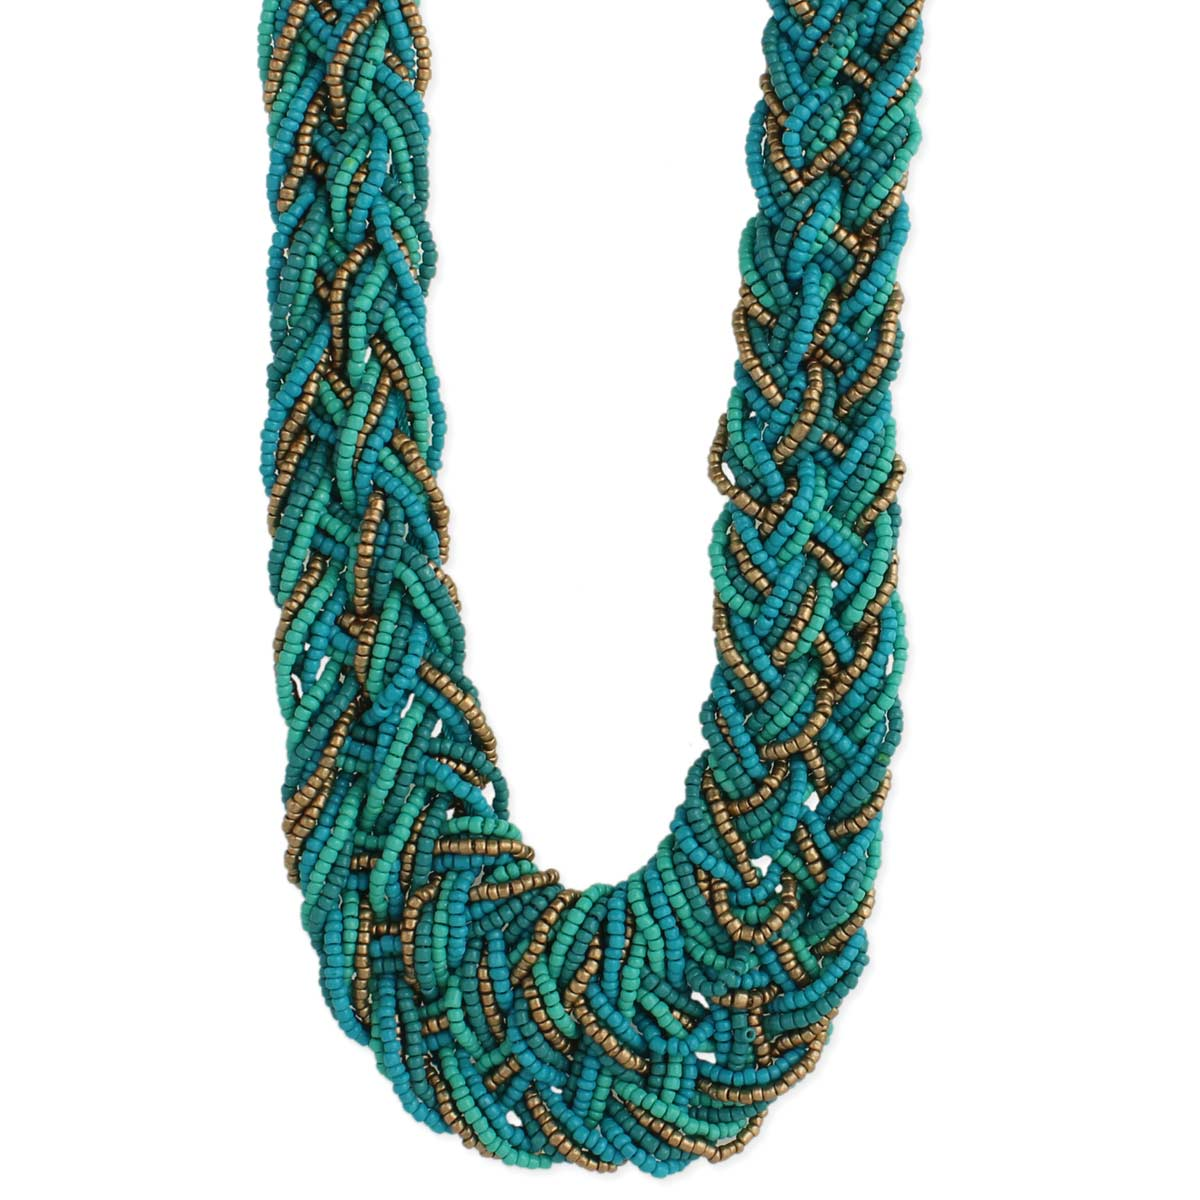 Turquoise Bead Braided Necklace